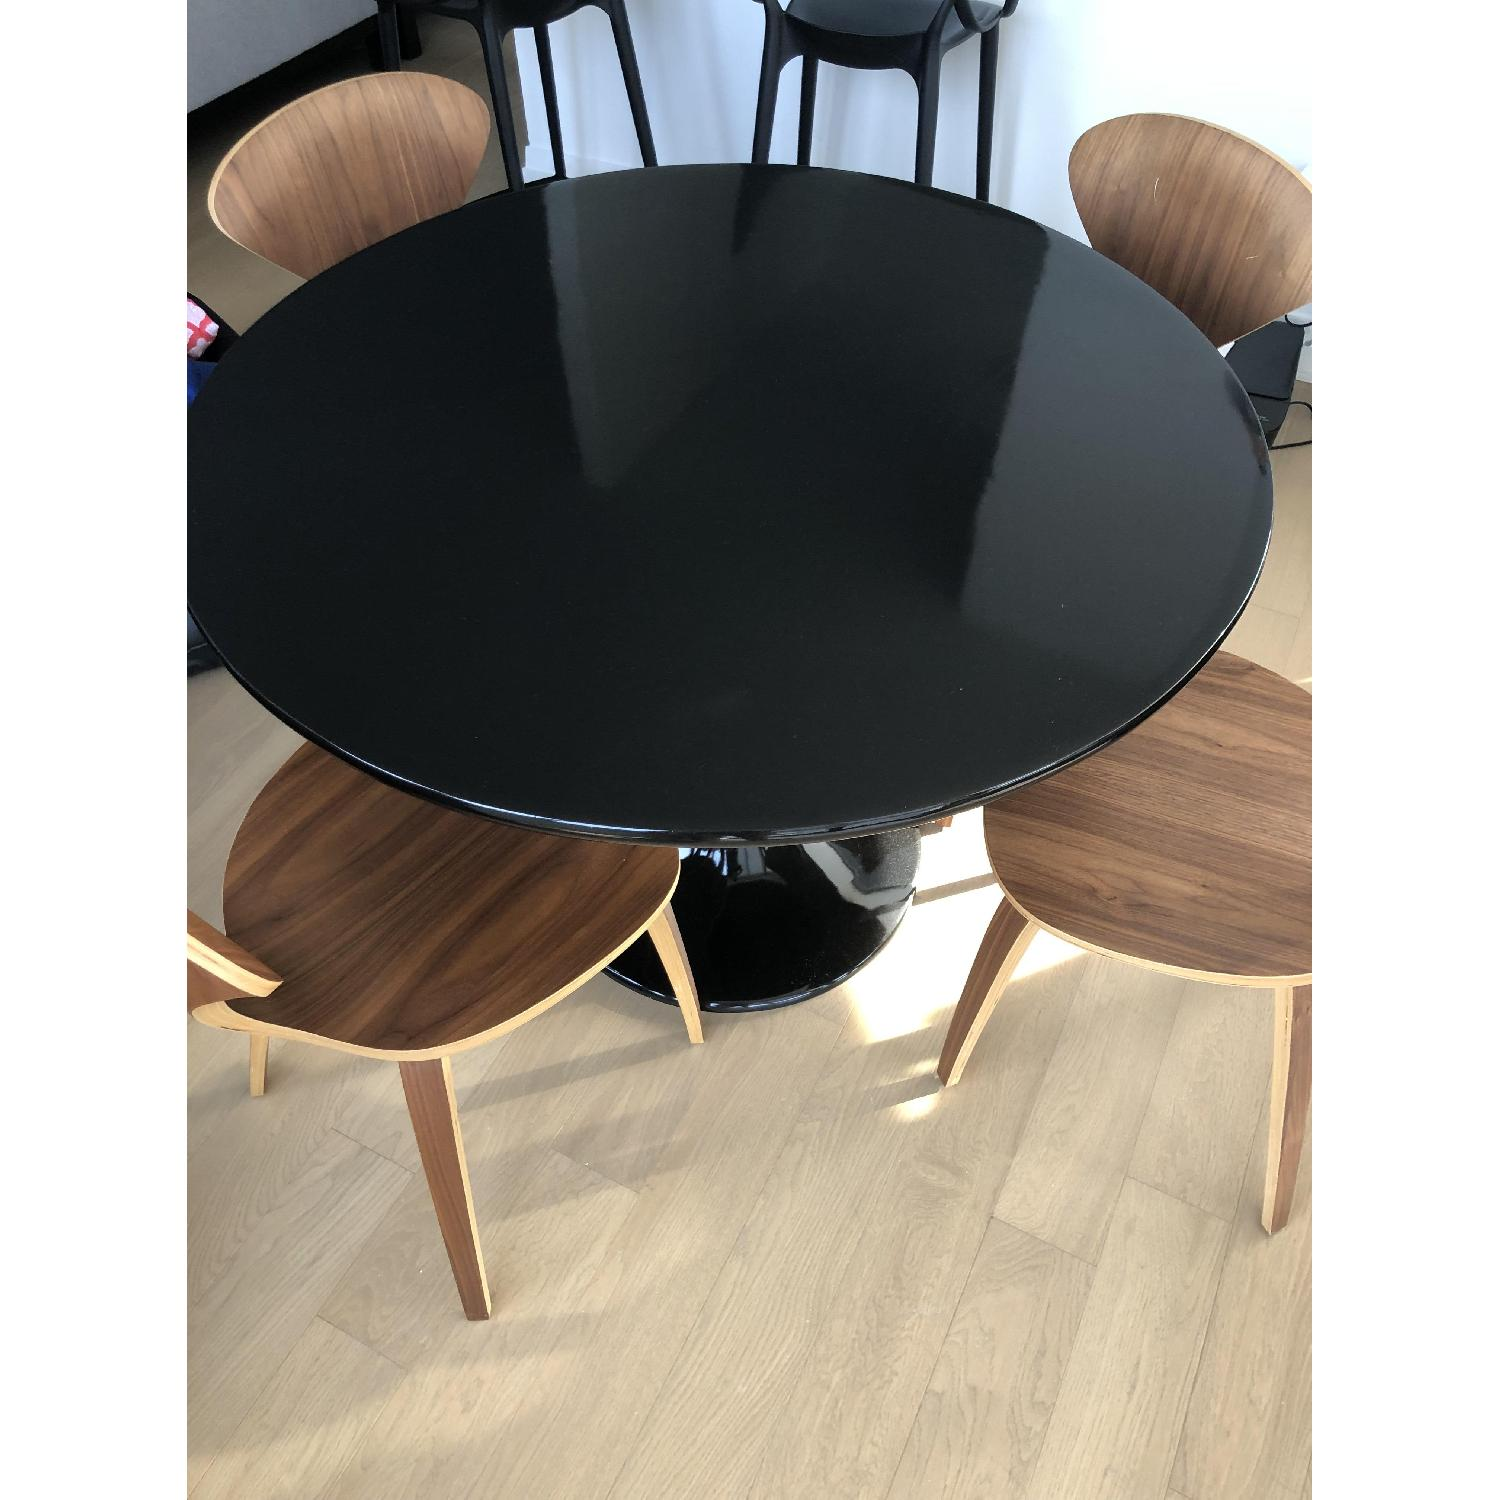 Fine Mod Imports Dining Table - image-7